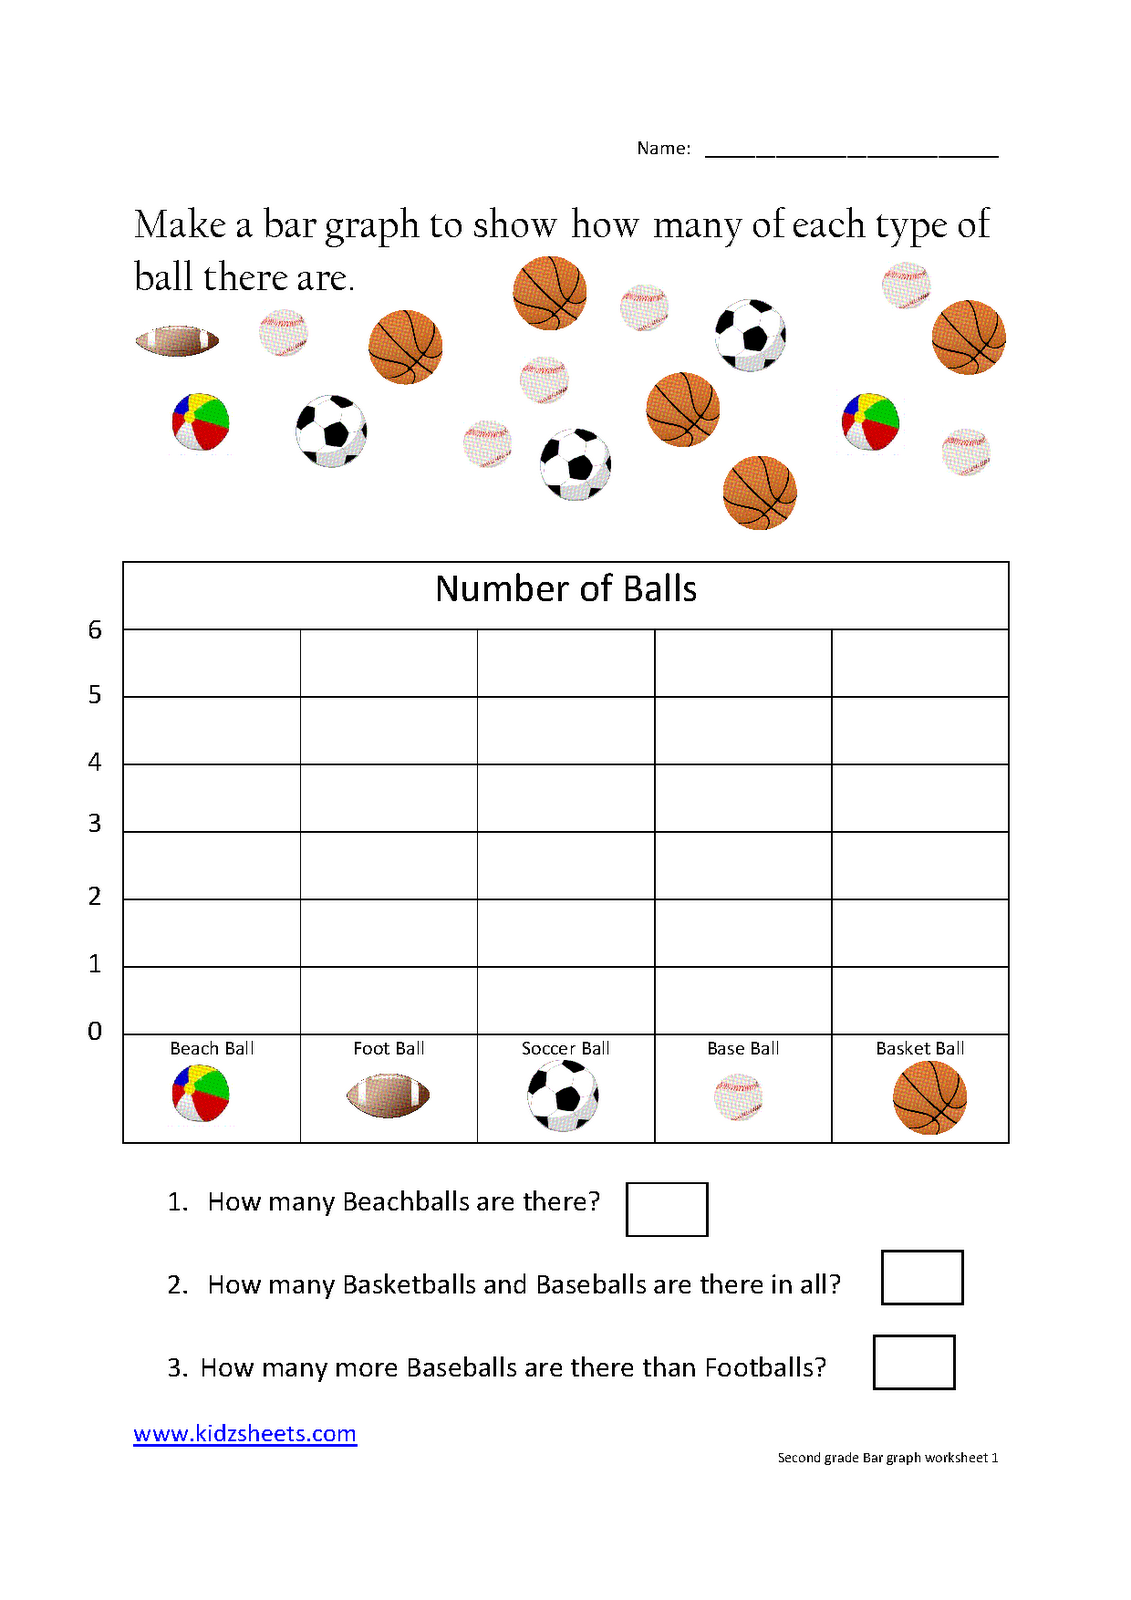 Worksheet Second Grade Work Sheets kidz worksheets second grade bar graph worksheet1 graph